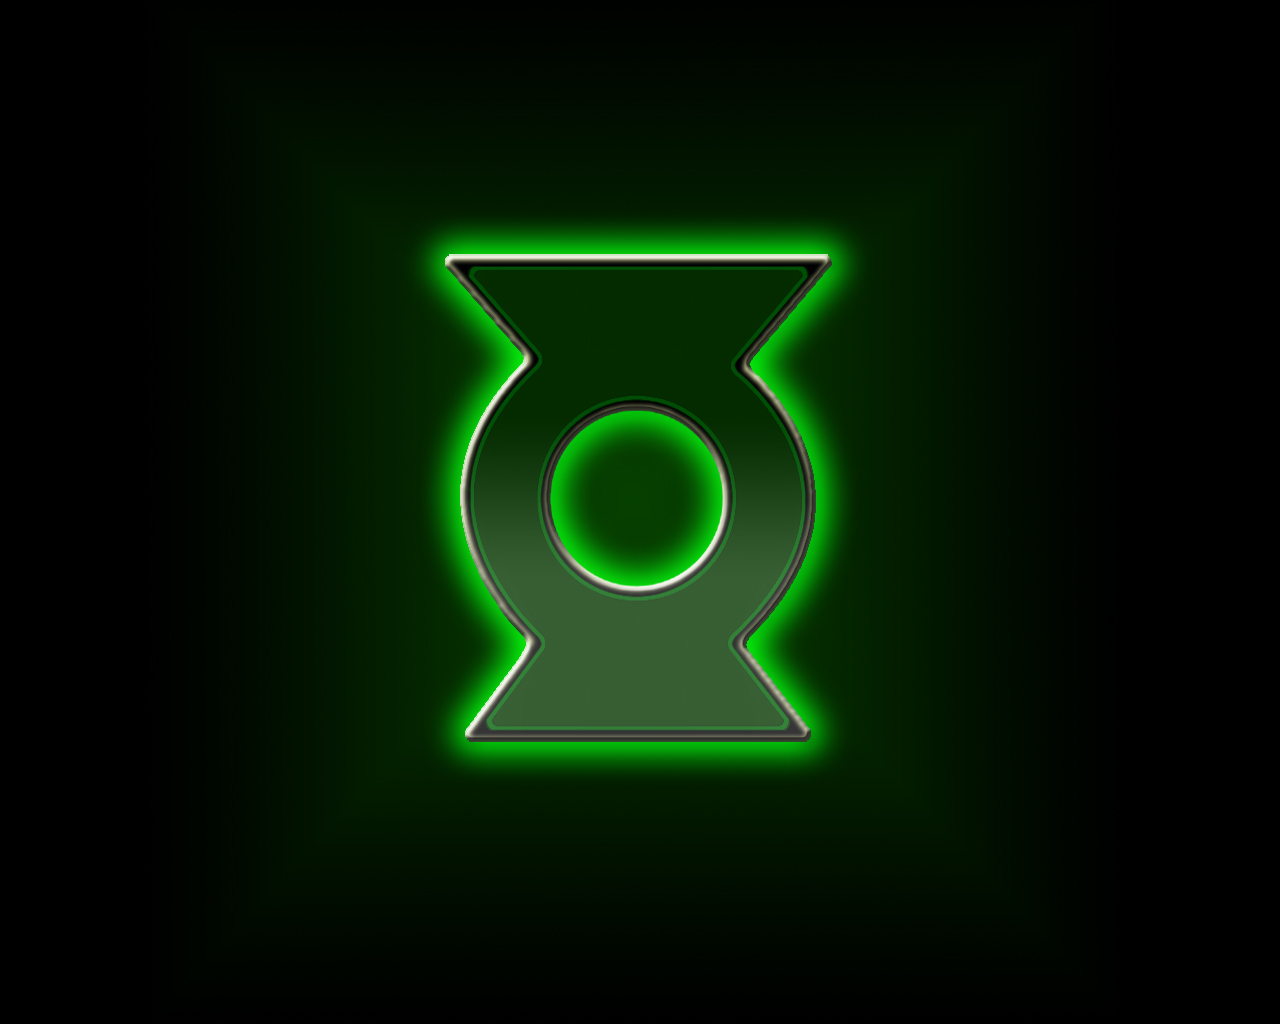 Green Lantern Logo Wallpaper 1280x1024